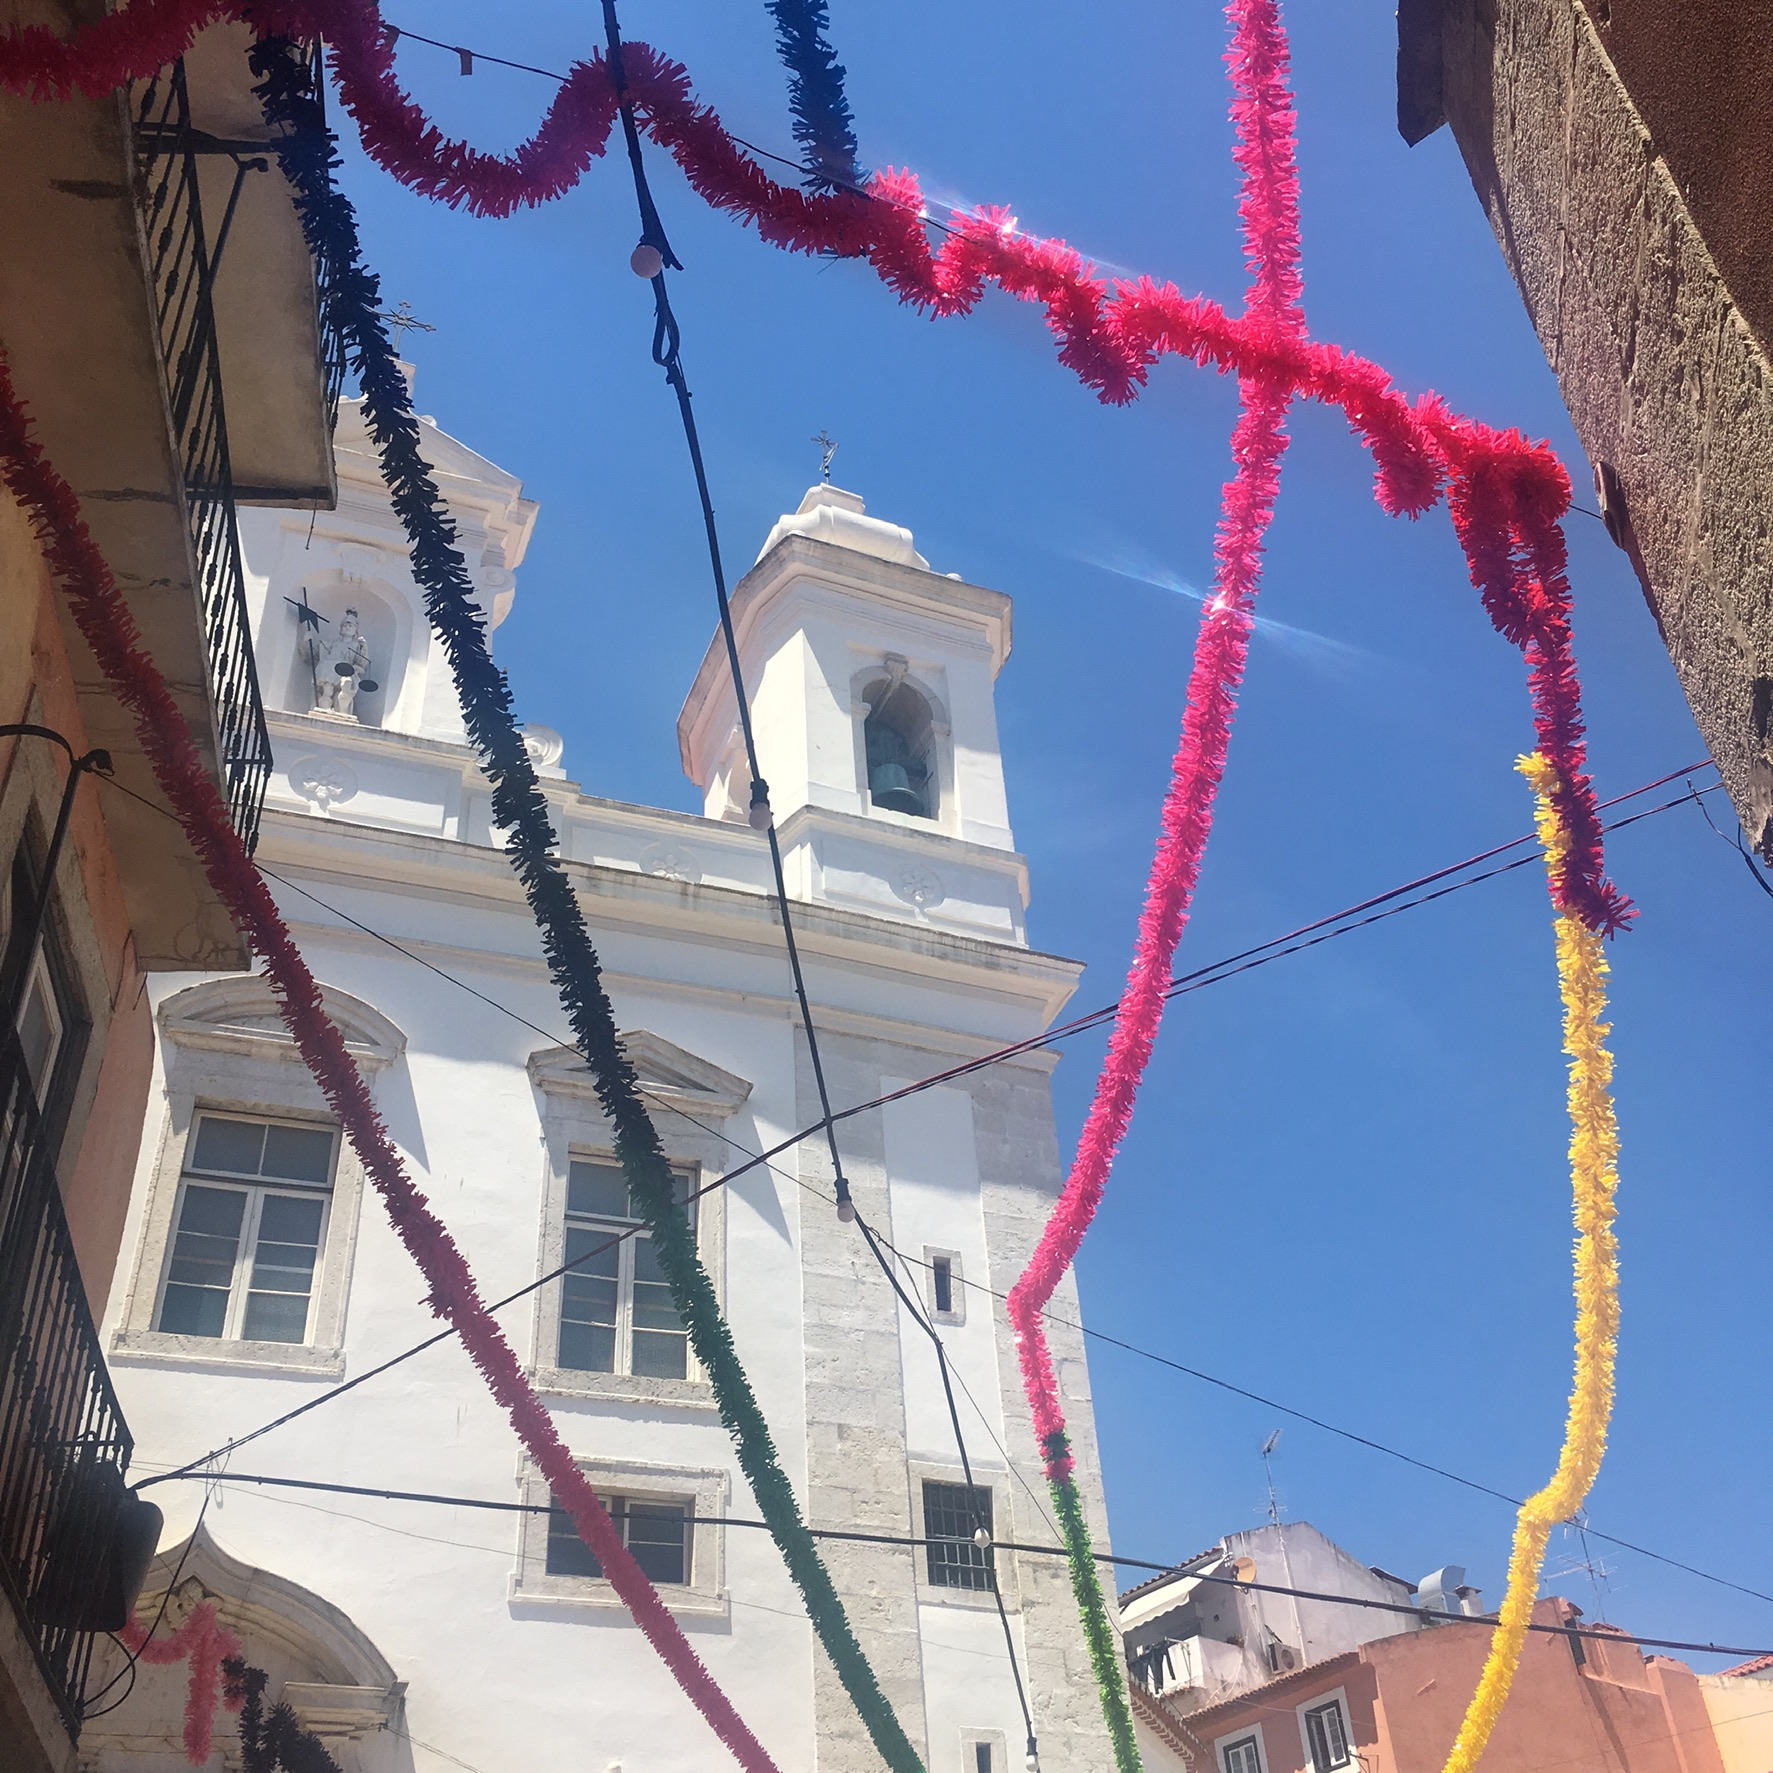 IN THE ALFAMA DISTRICT